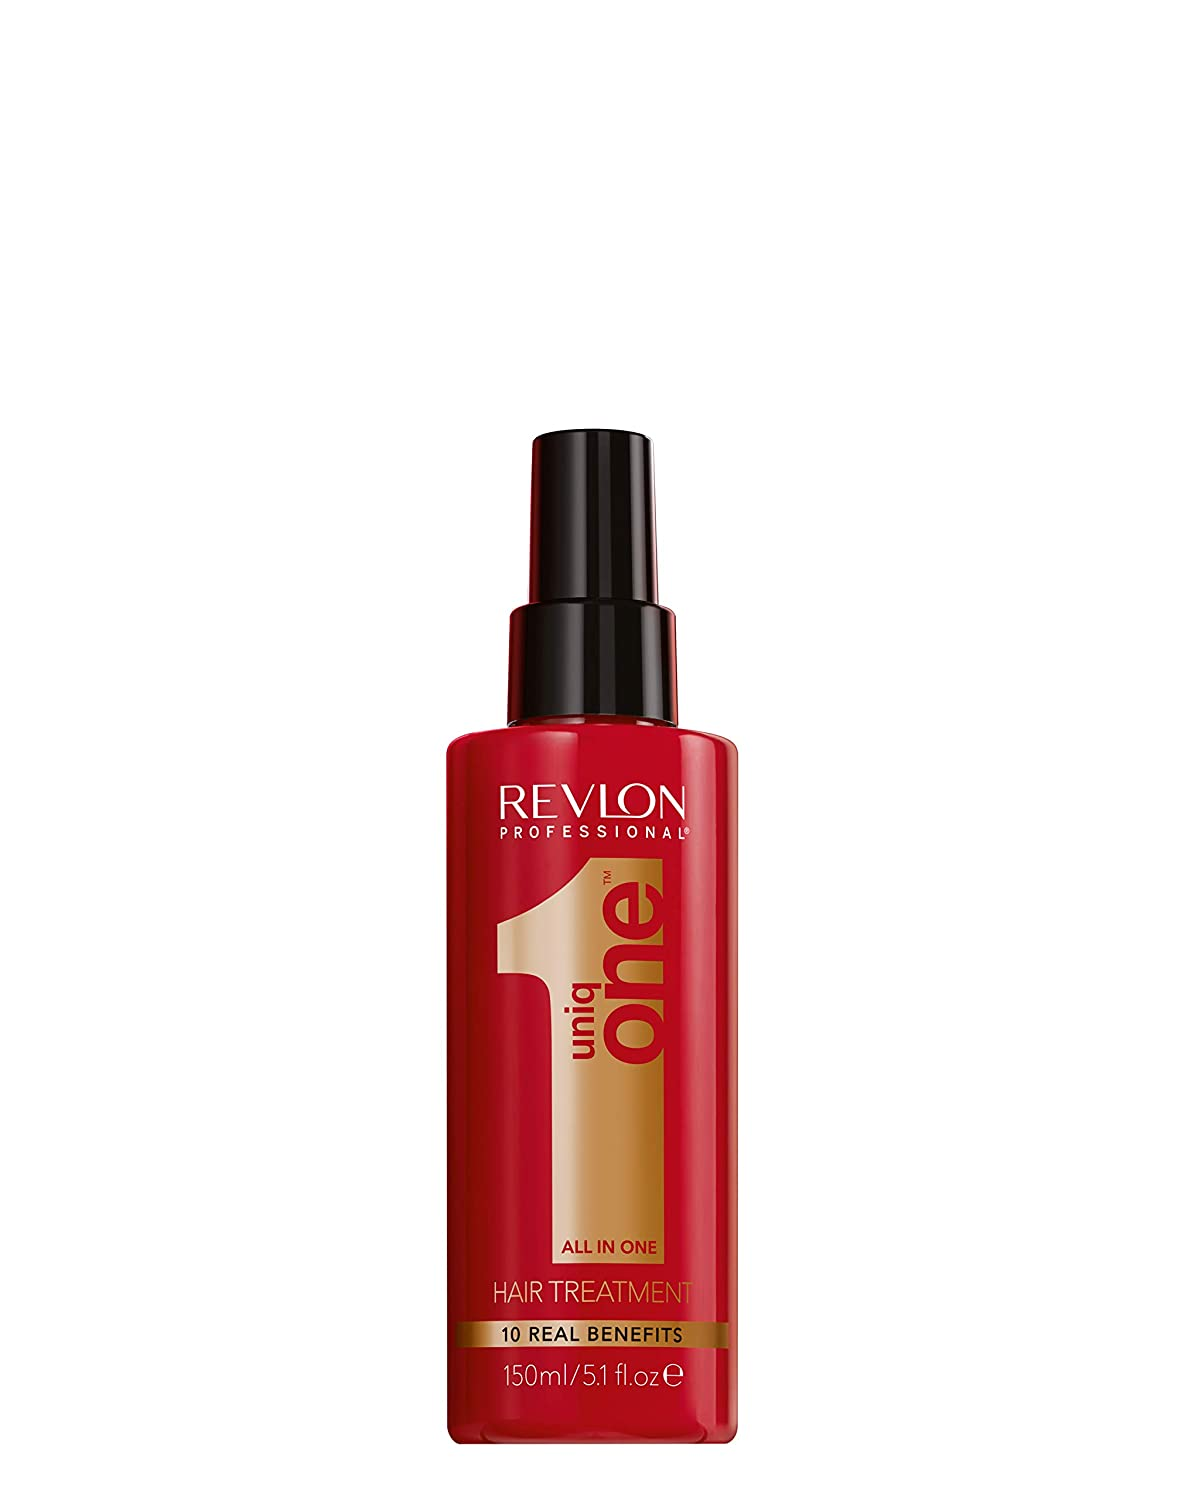 Revlon Uniq One All In One Hair Treatment 150ml 1106704001 56986_-150ml